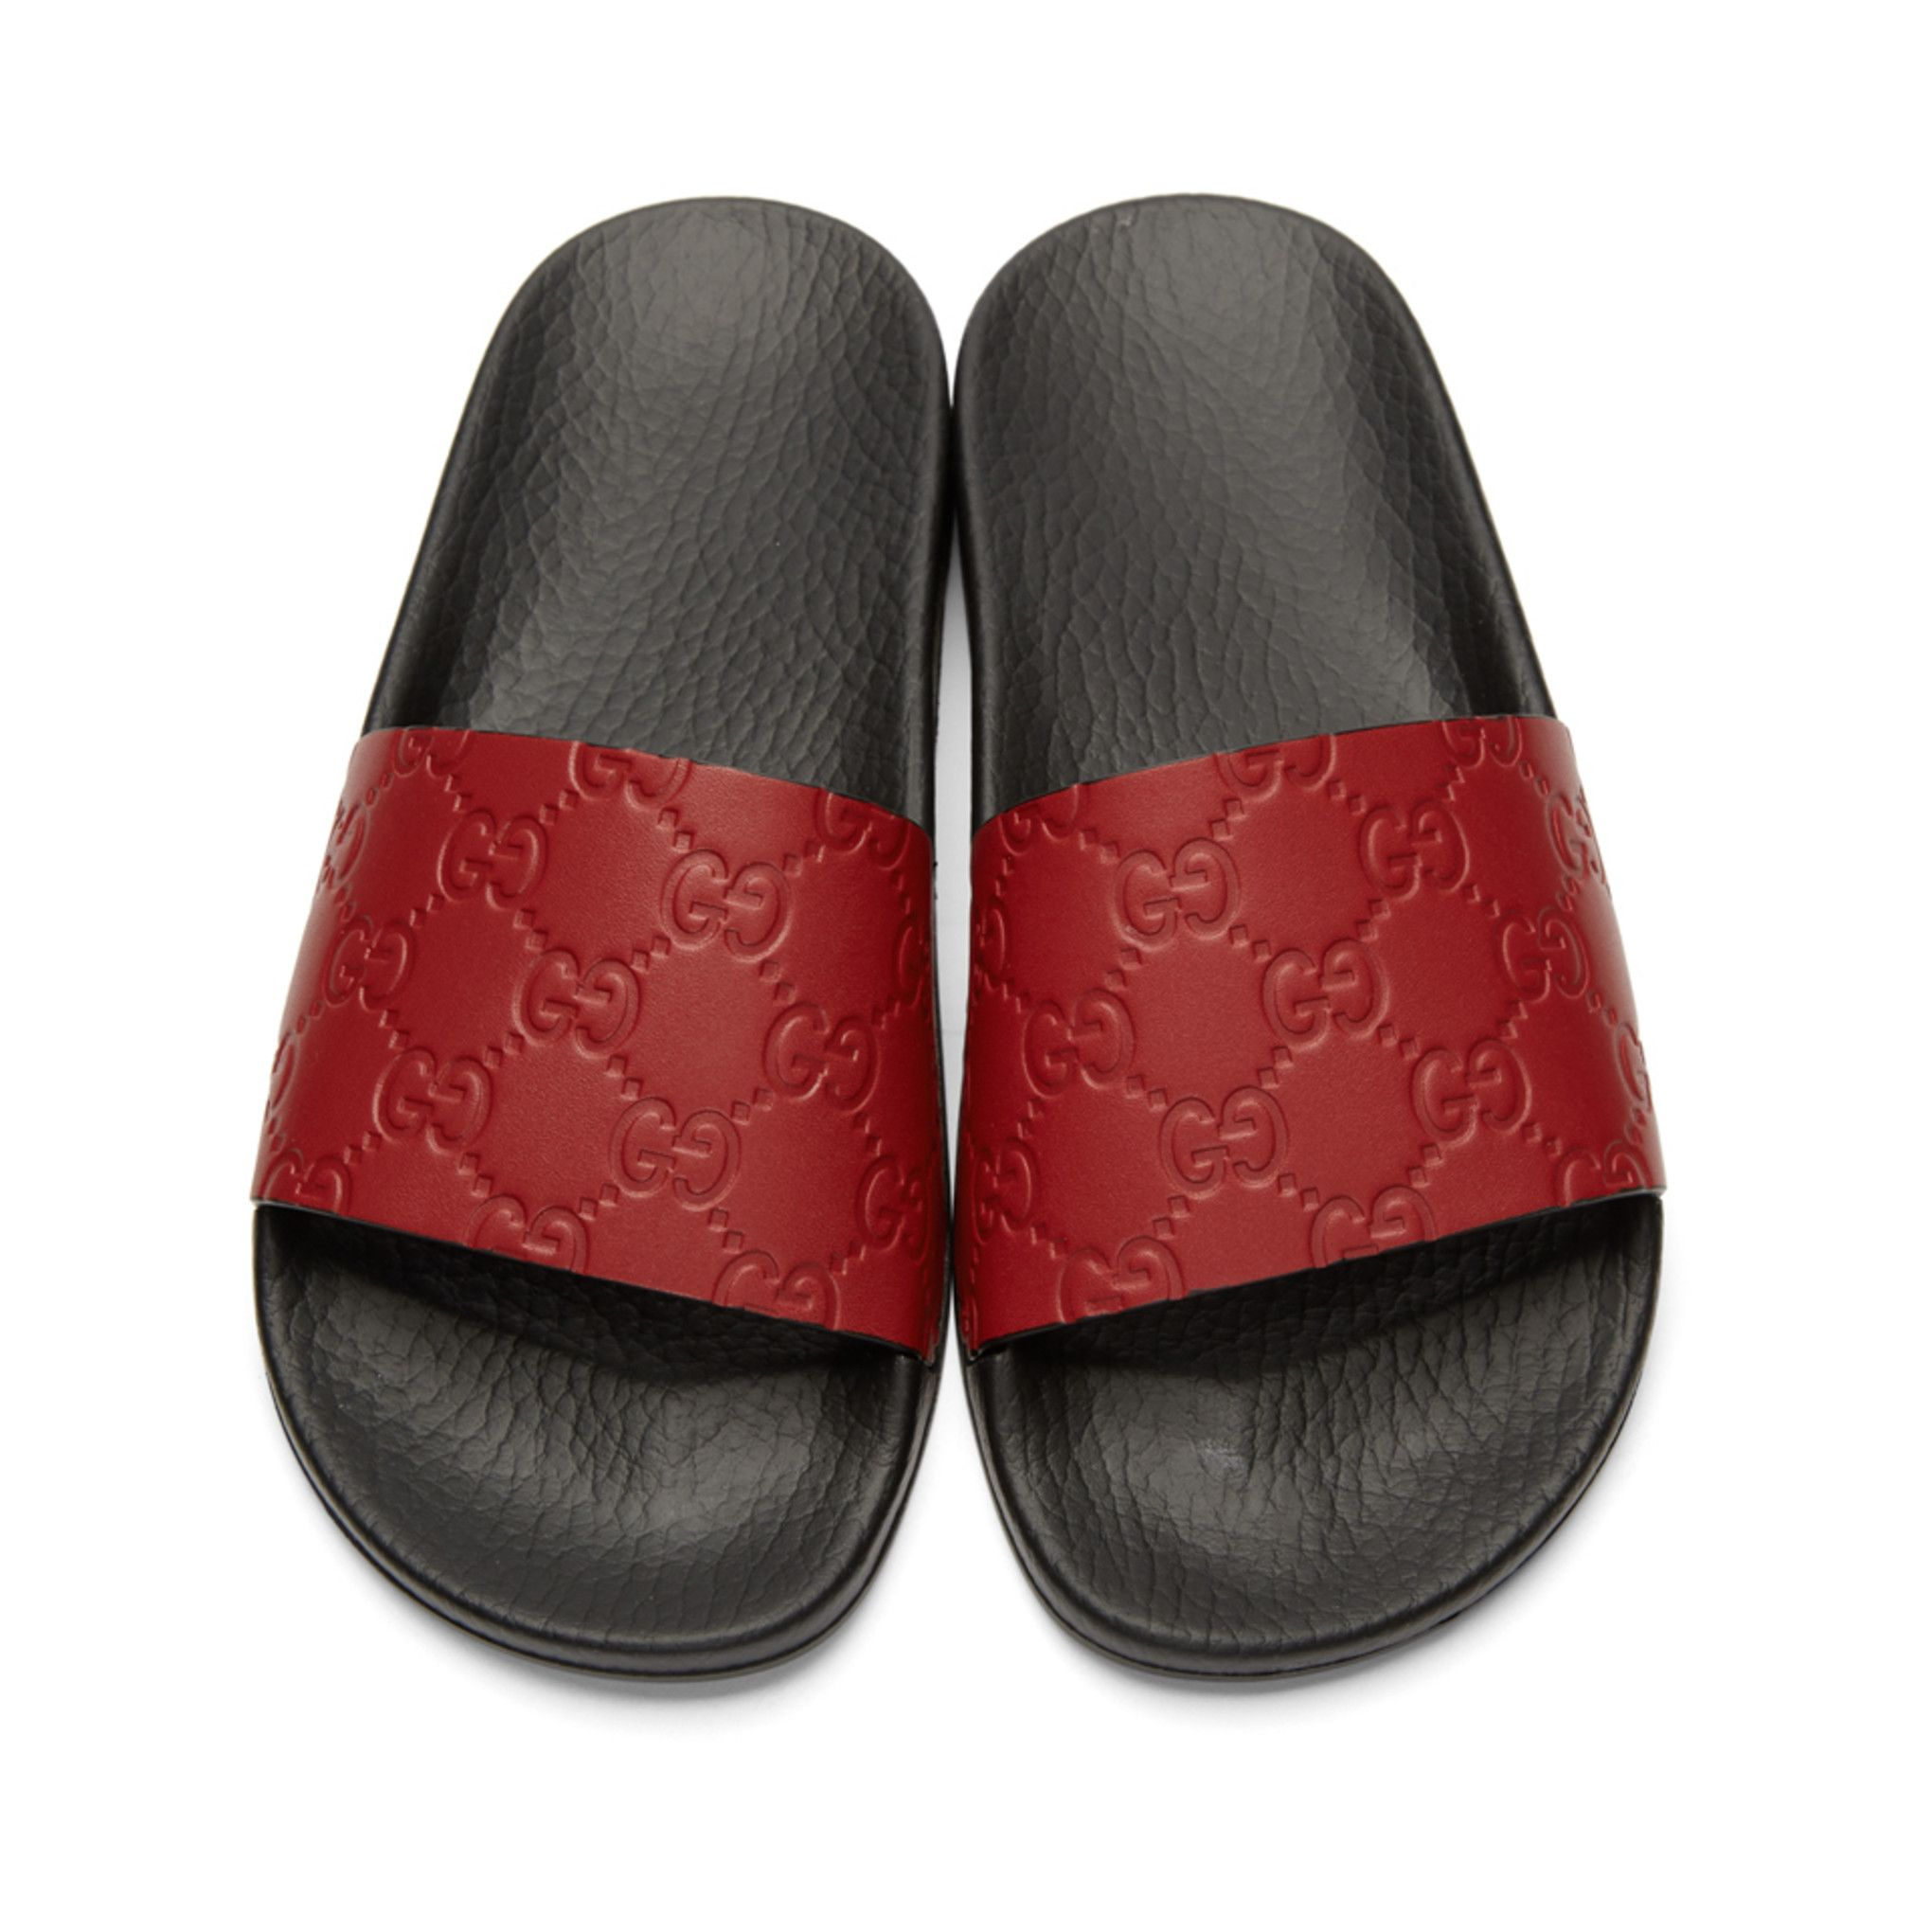 88e490073e24c Gucci - Red GG Supreme Pool Slides